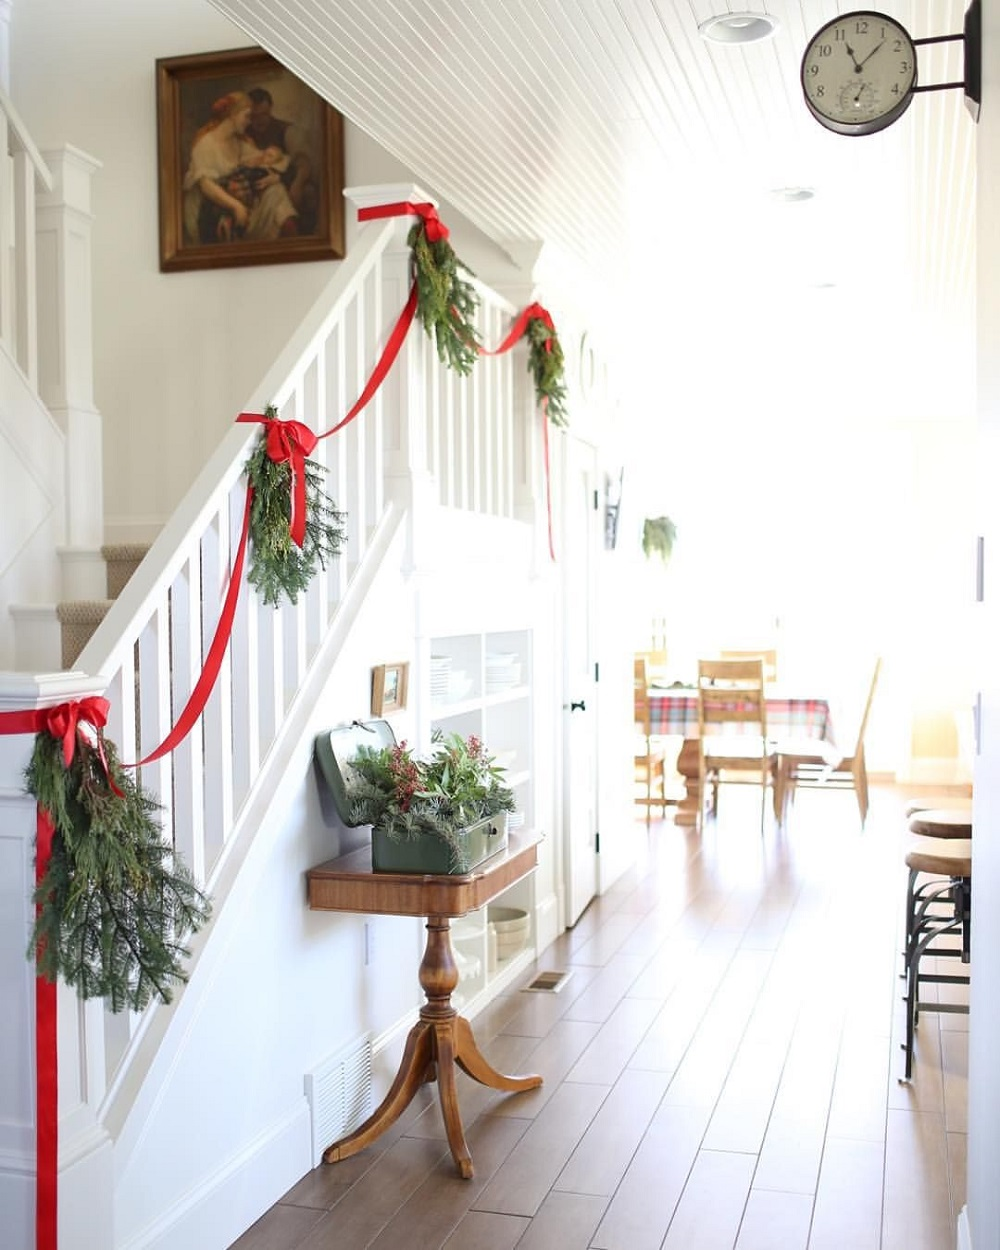 t3-128 Great decoration ideas for Christmas stairs that you should definitely try